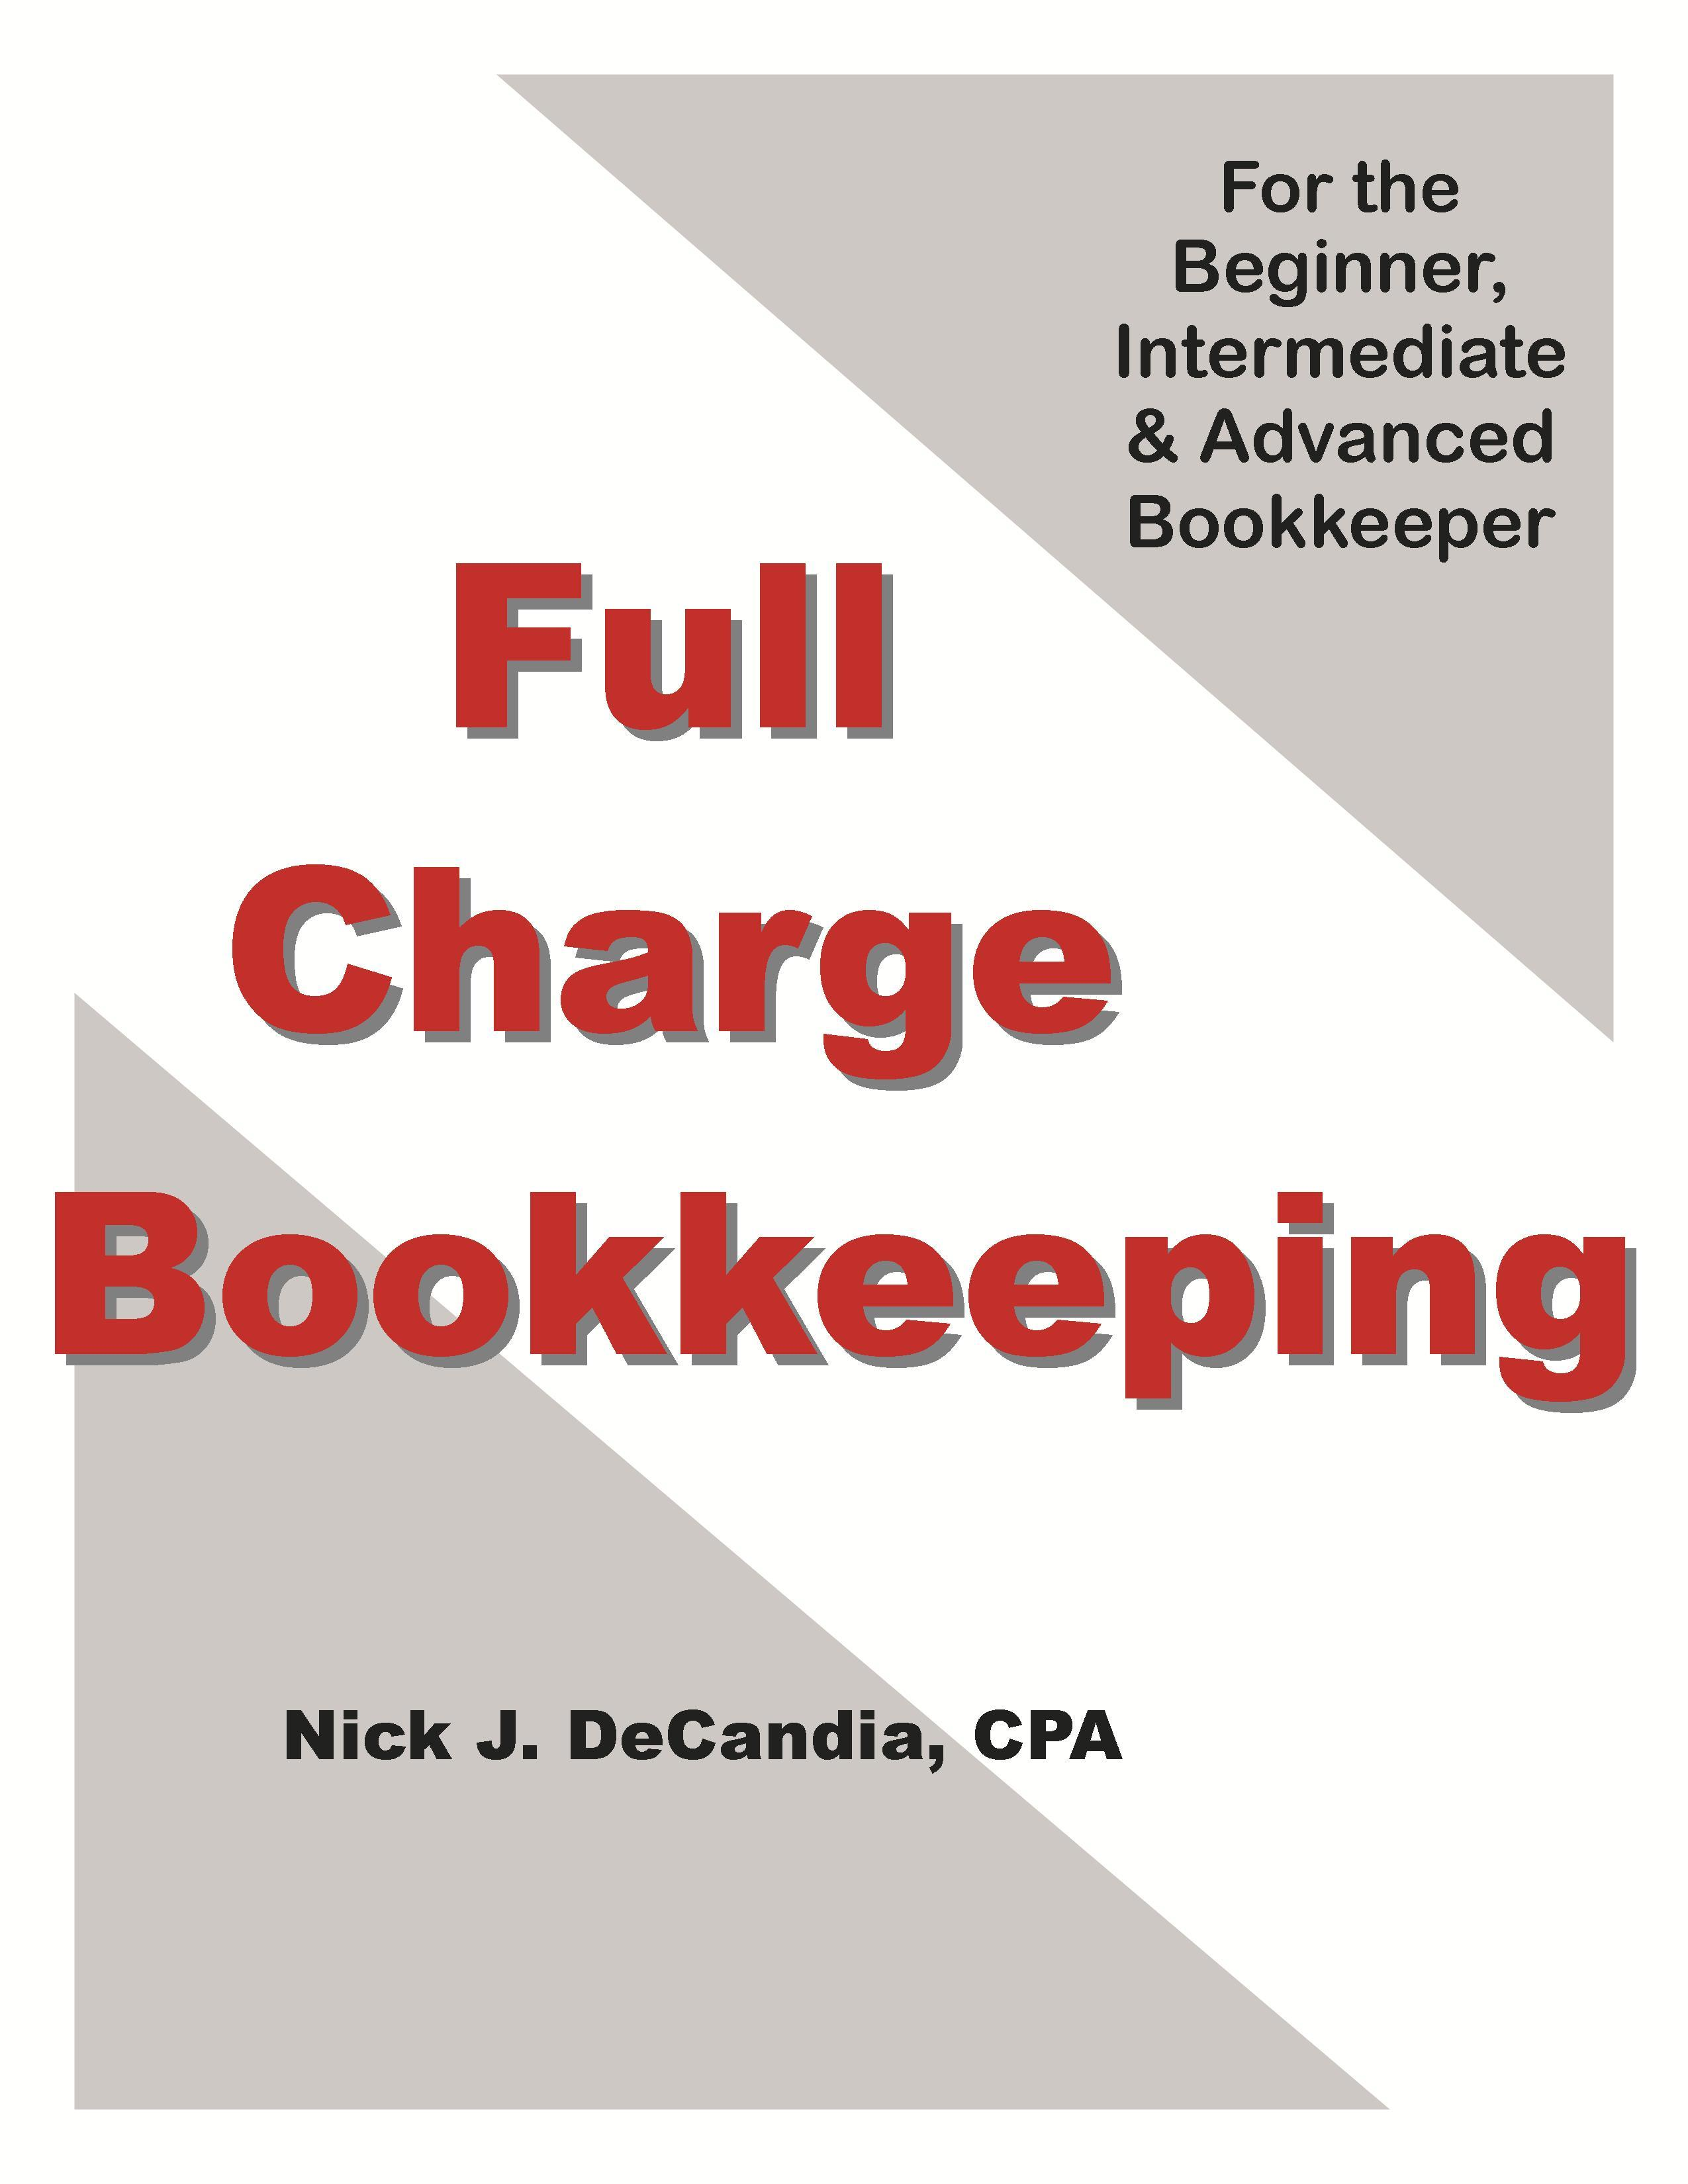 Full Charge Bookkeeping, For the Beginner, Intermediate & Advanced Bookkeeper